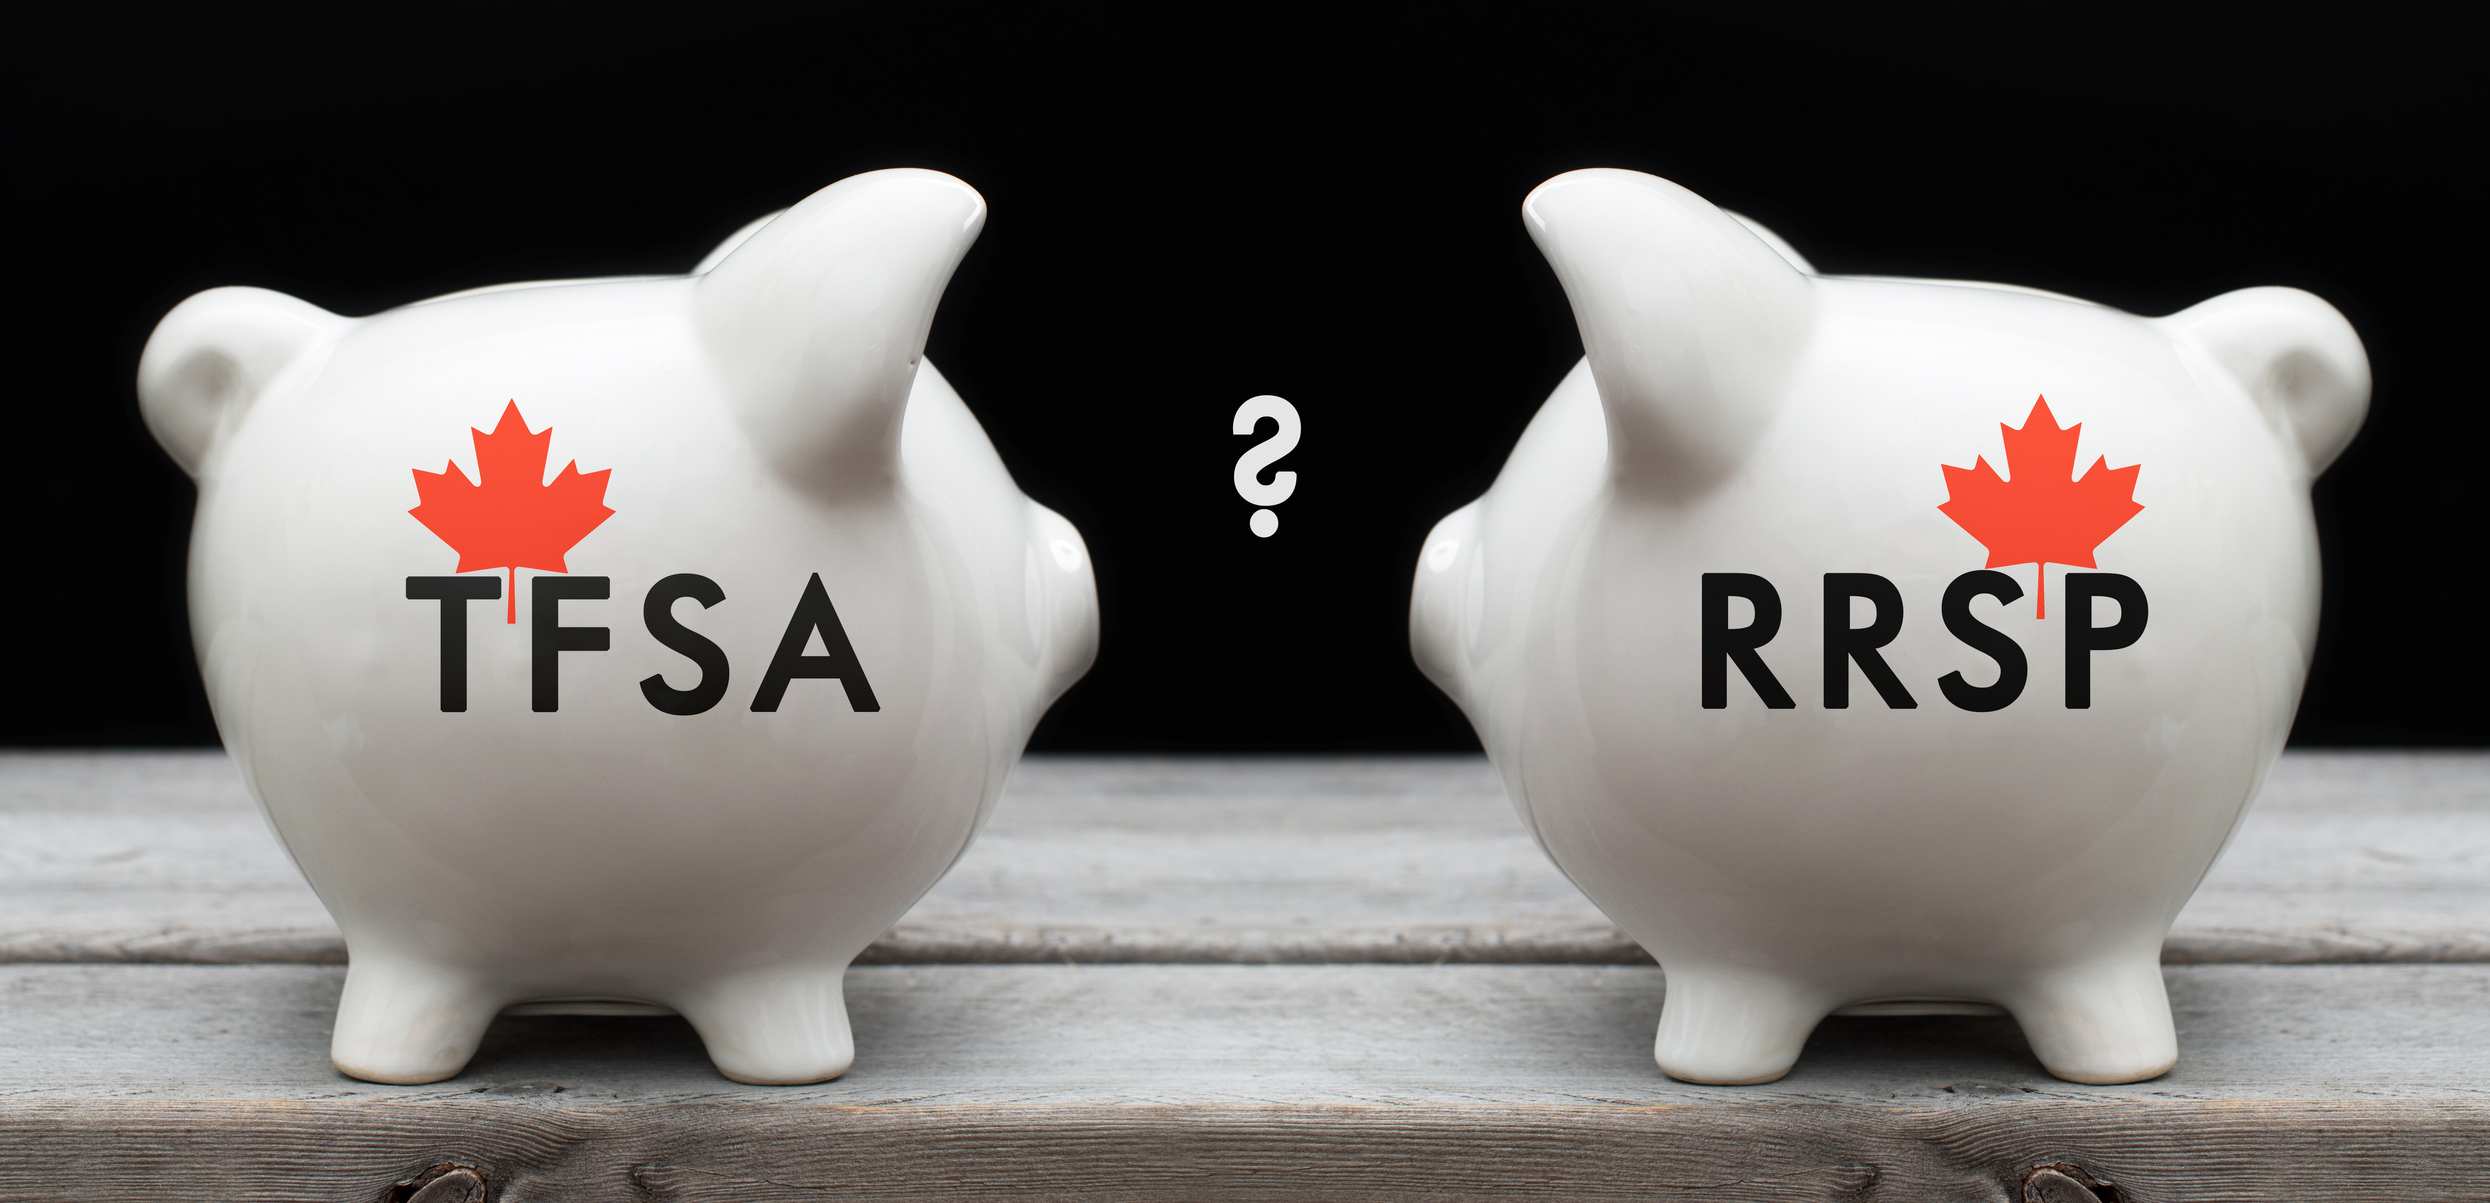 The Canuck Conundrum: RRSPs or TFSAs?